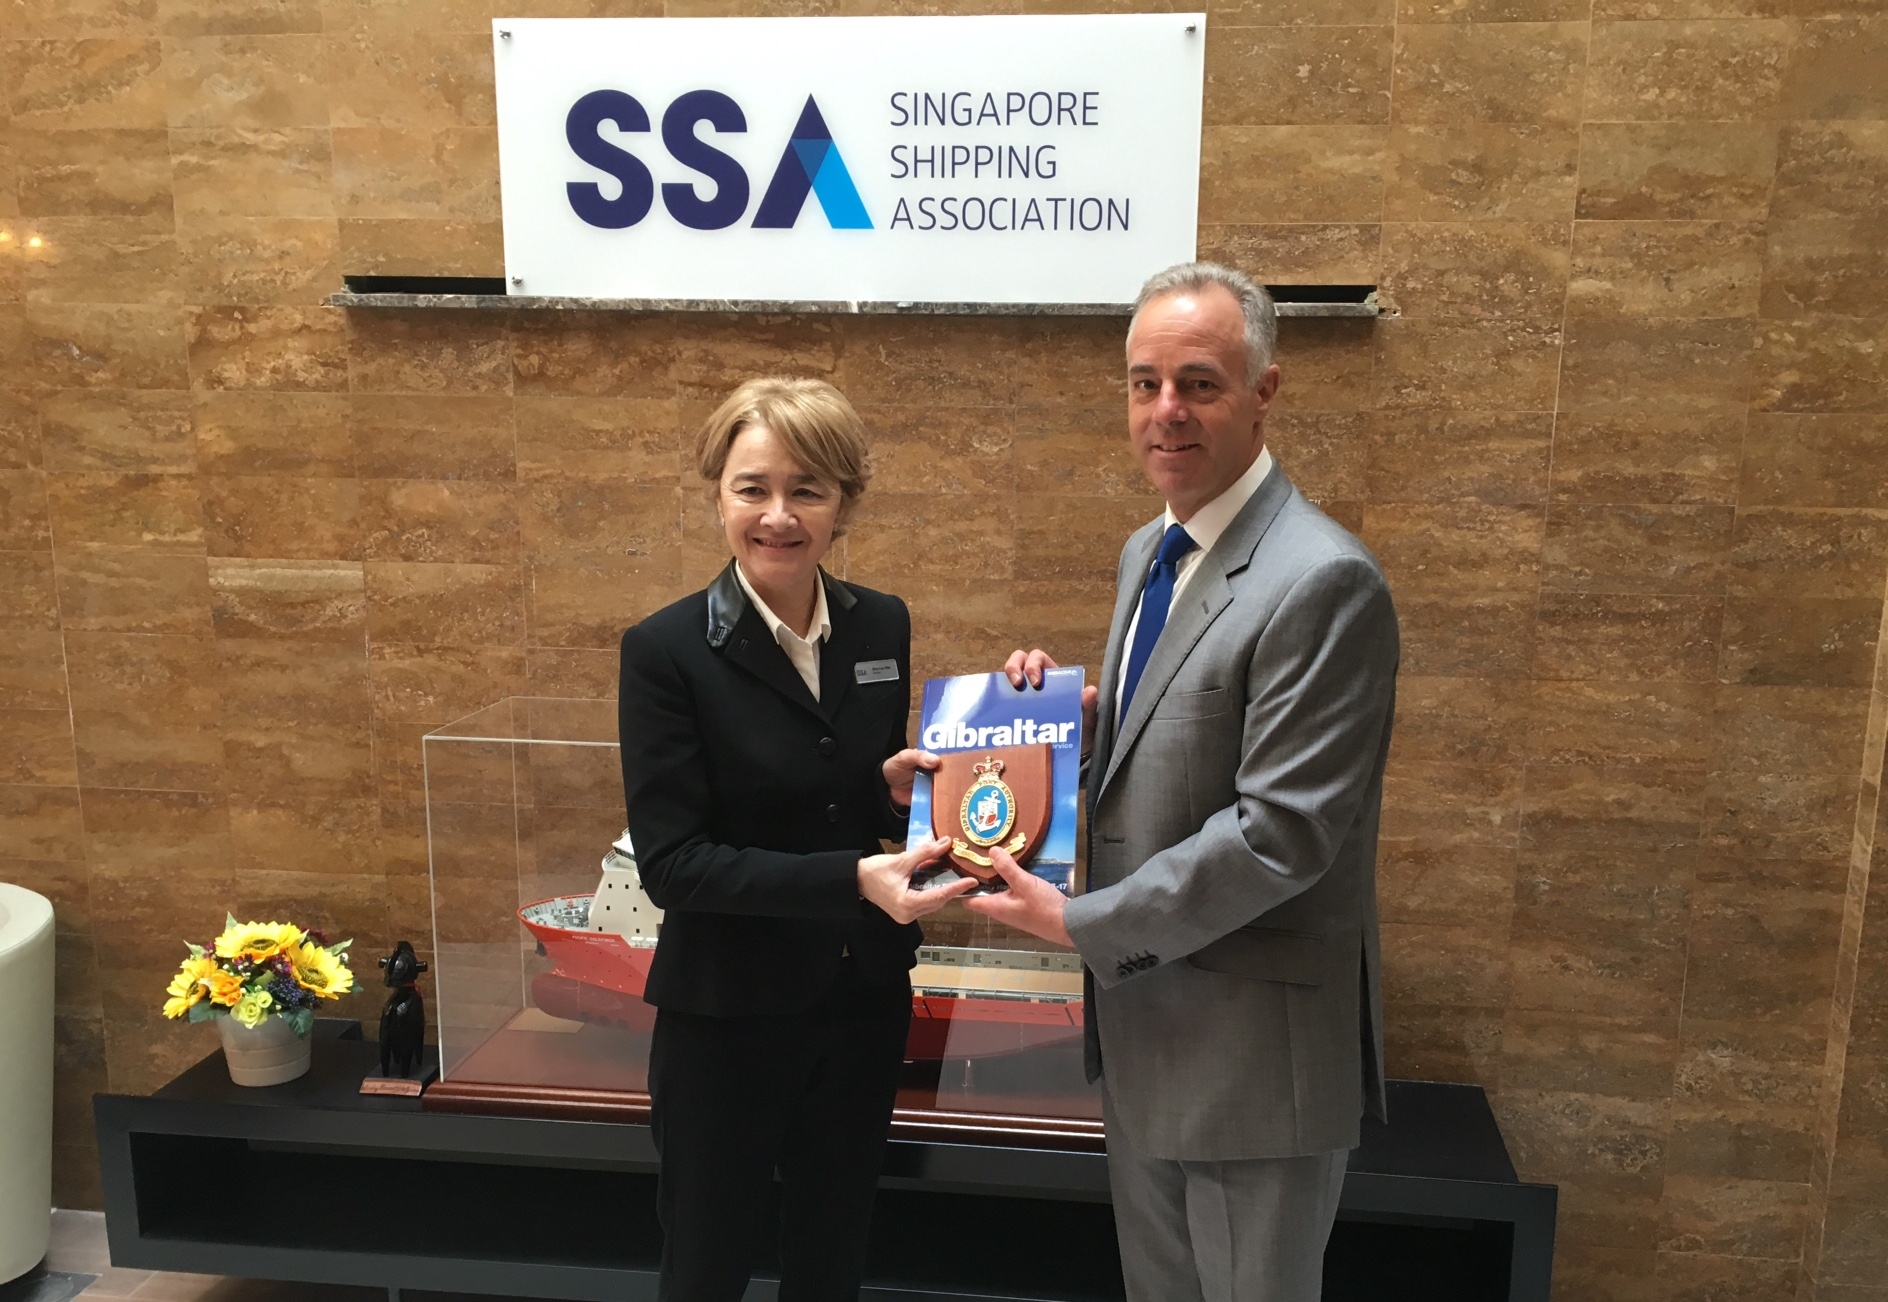 Captain of the Port Bob Sanguinetti exchanges plaques with Chairman Gina Lee-Wan, Senior Council Member of the Singapore Shipping Association